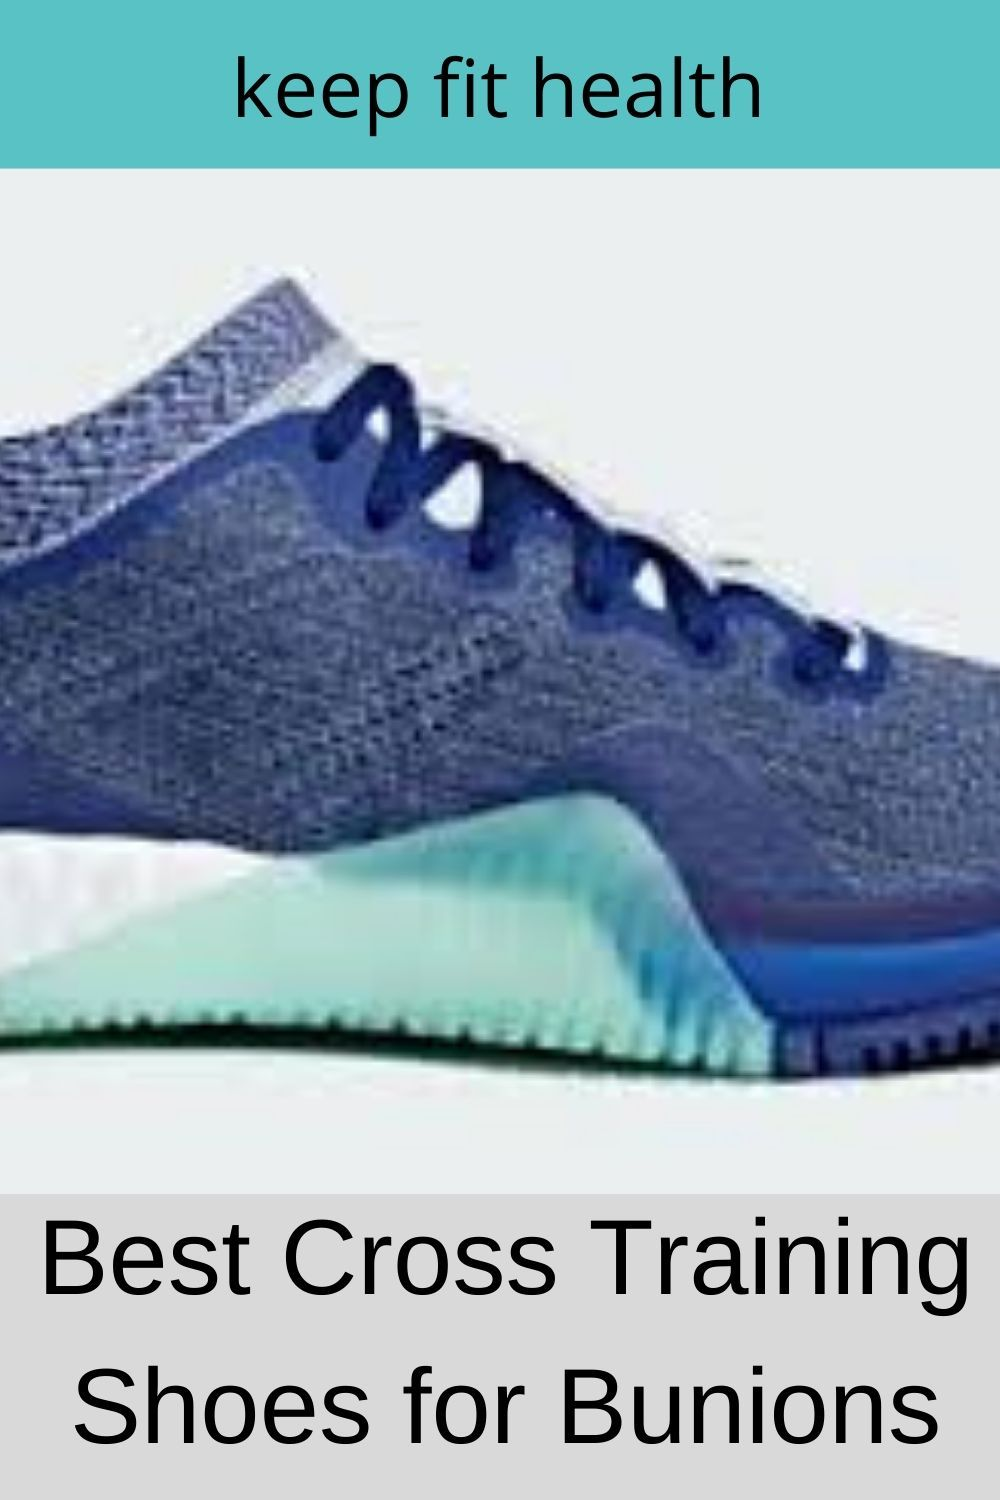 Top 7 best cross training shoes for